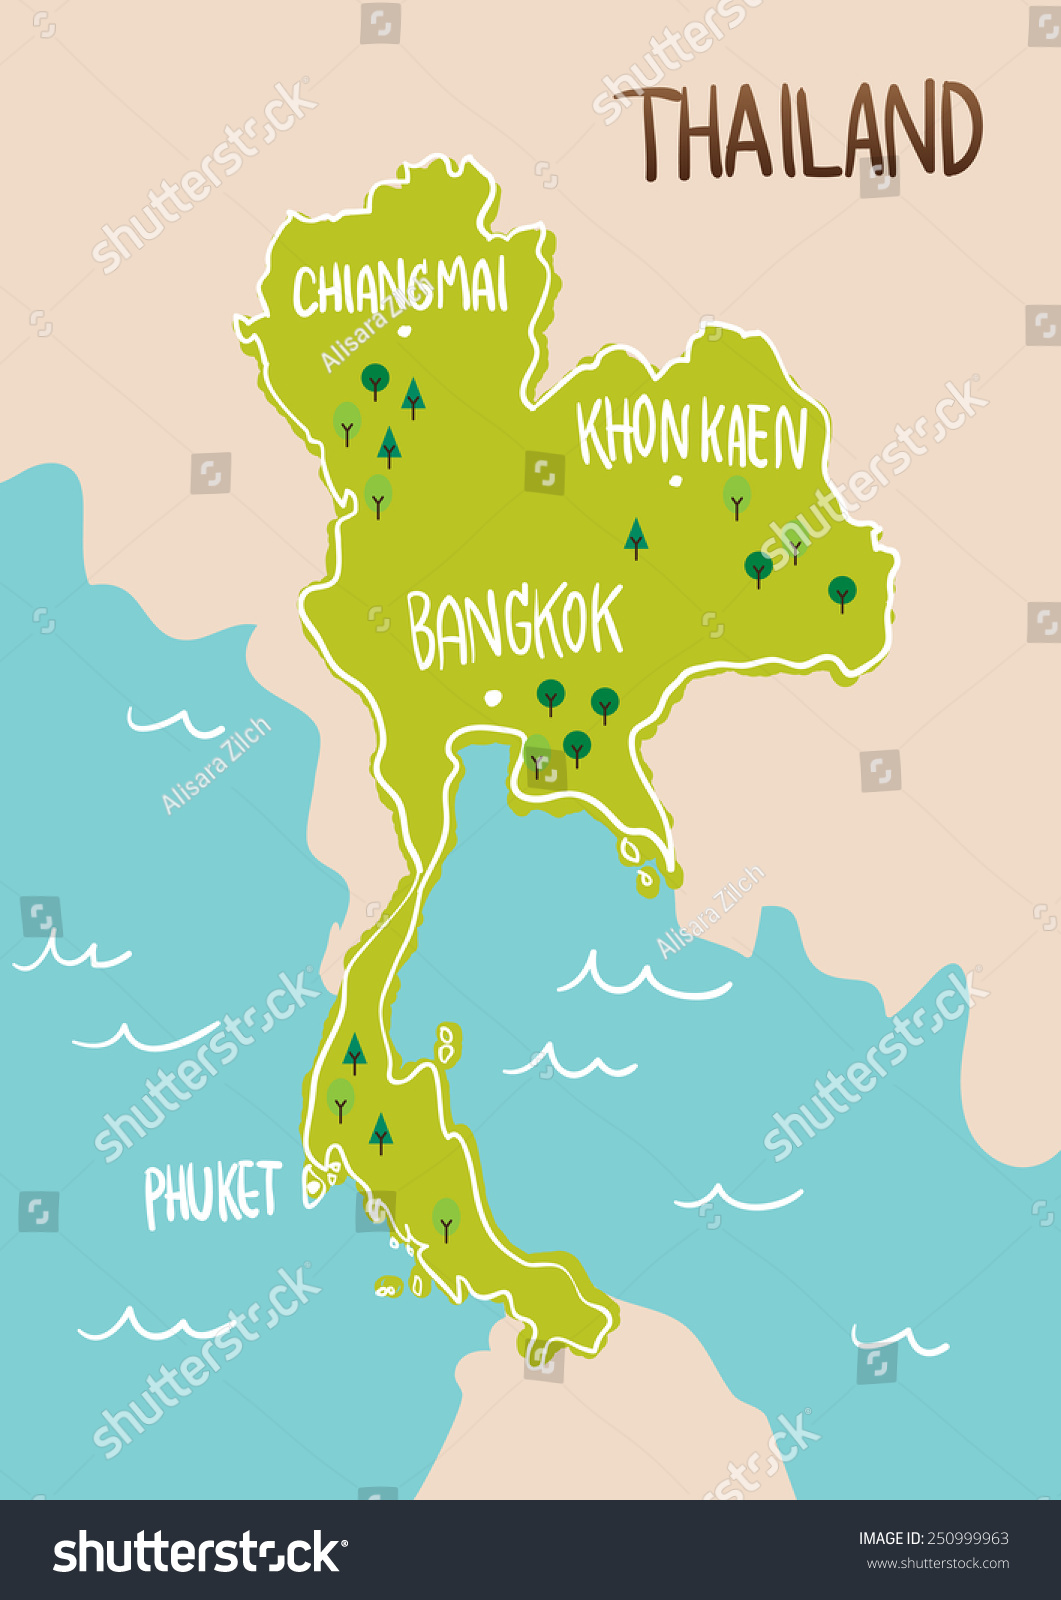 Thailand map drawing illustration vector stock vector 250999963 thailand map drawing illustration vector gumiabroncs Images